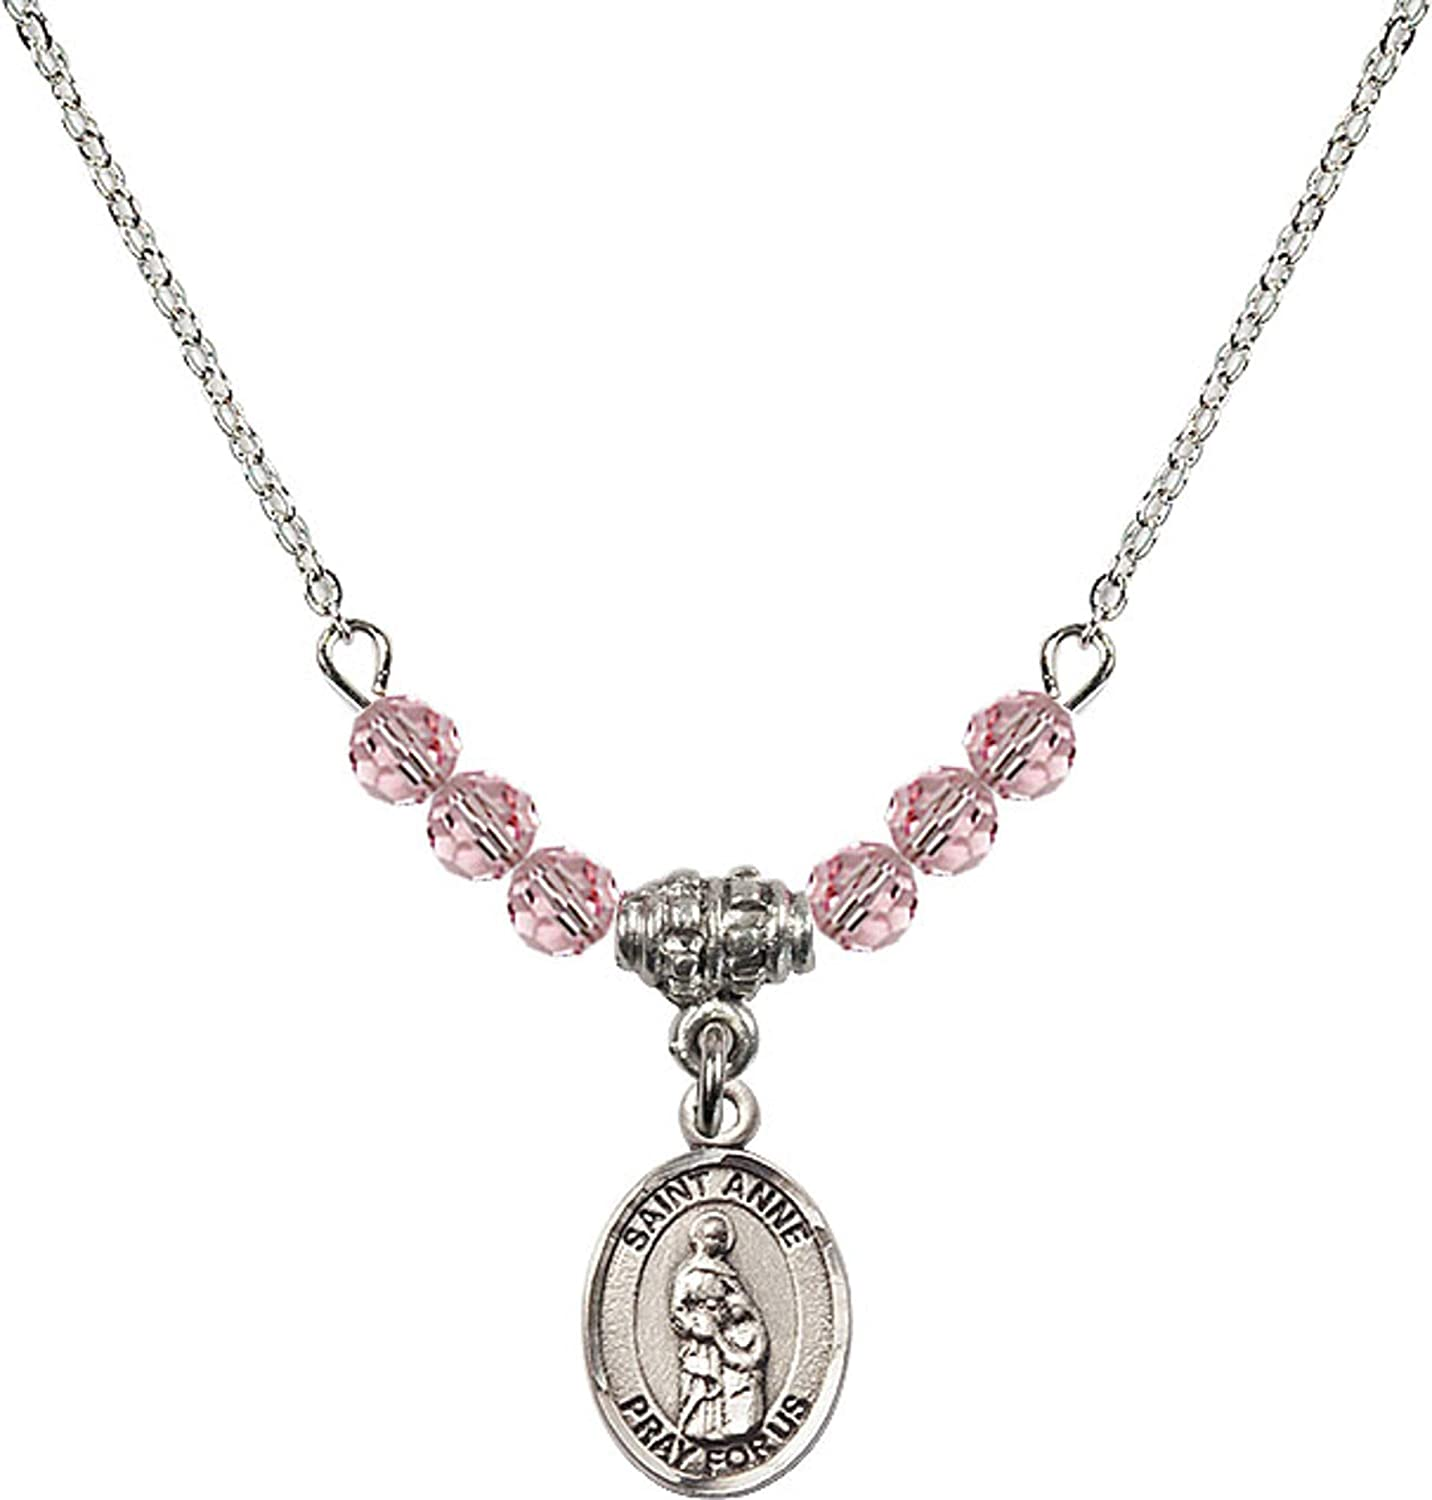 Bonyak Jewelry 18 Inch Rhodium Plated Necklace w// 4mm Light Rose Pink October Birth Month Stone Beads and Saint Anne Charm